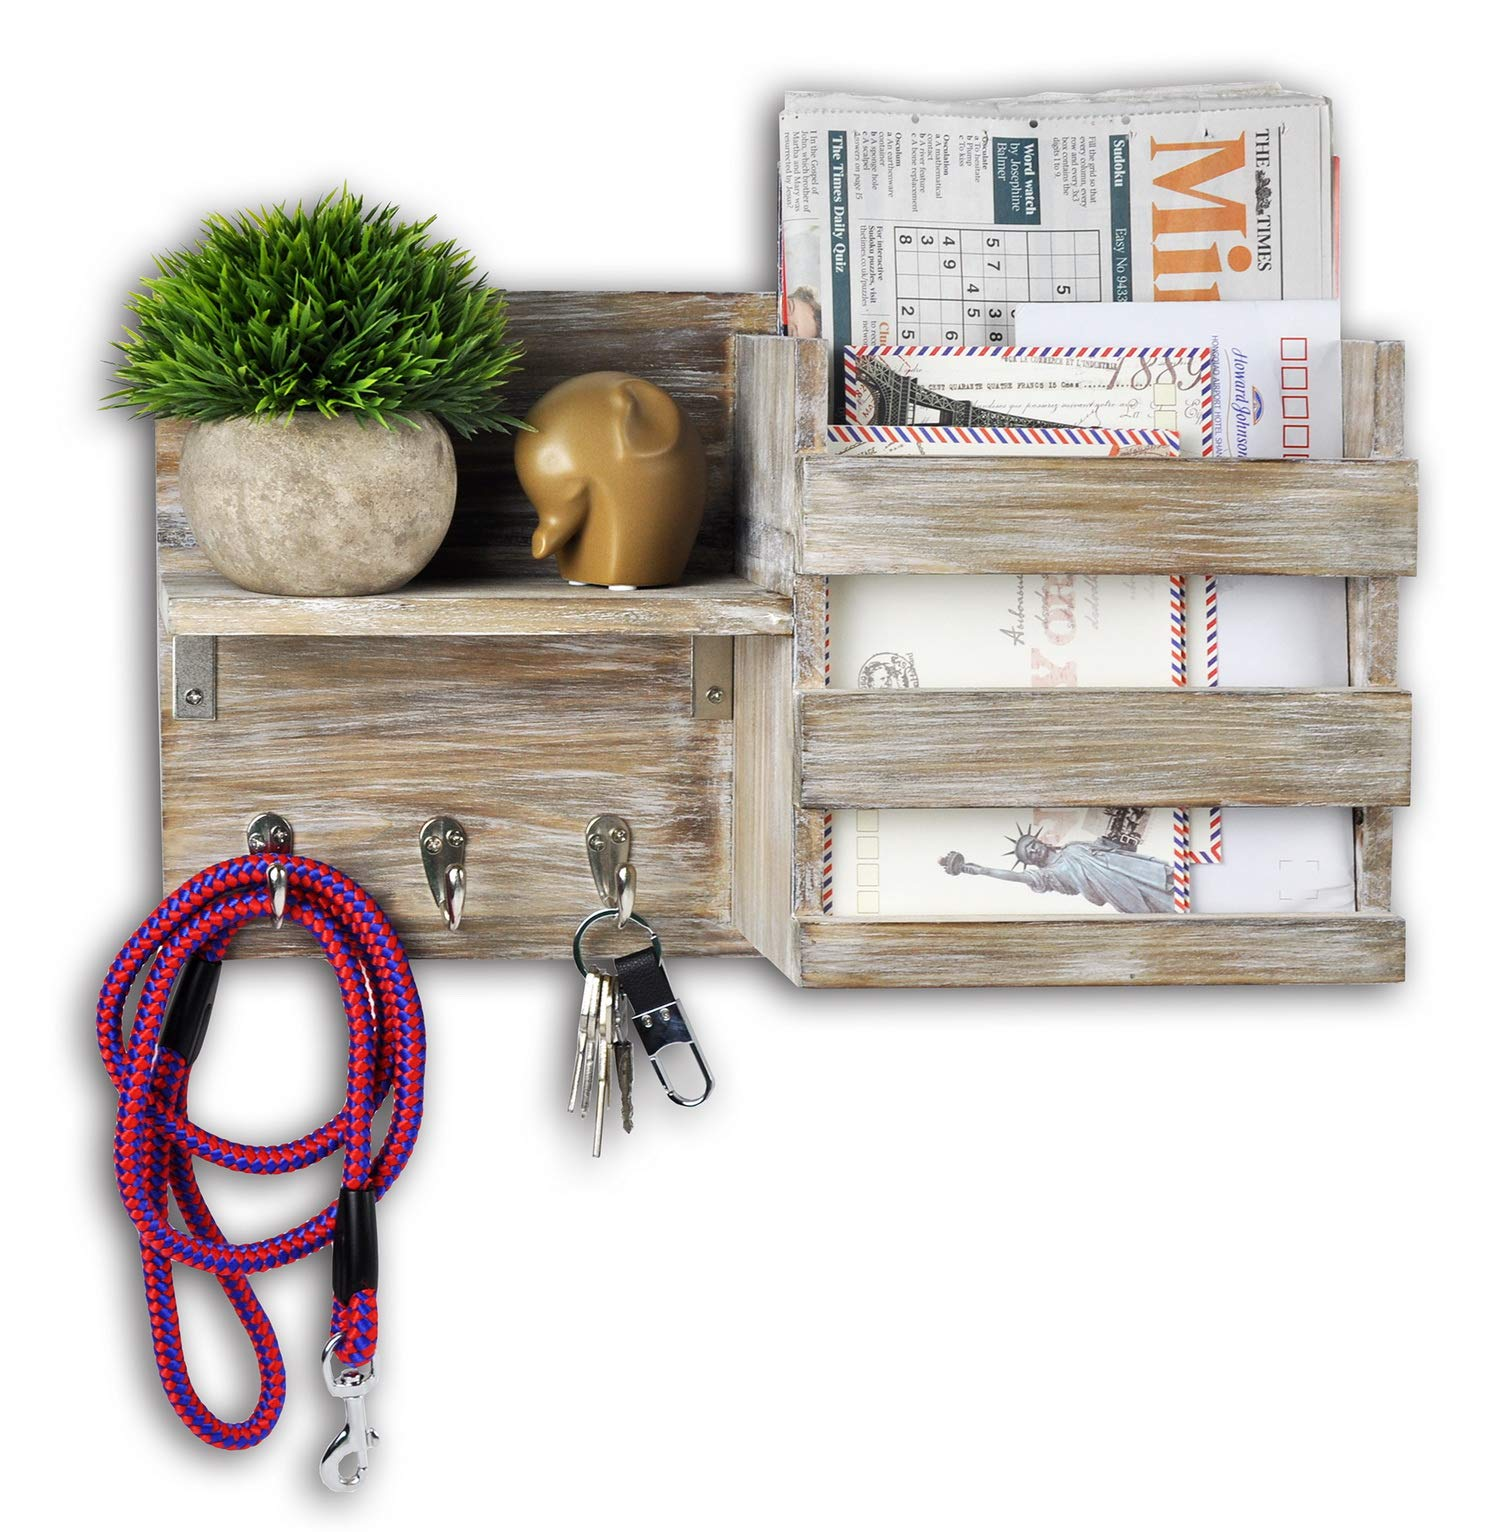 Spiretro Wall Mount Entryway Mail Envelope Organizer, Key Holder Hooks, Leash Hanging, Coat Rack, Letter & Newspaper Storage, Ornament Home Decorative Floating Shelf, Country Rustic Torched Wood-Grey by Spiretro